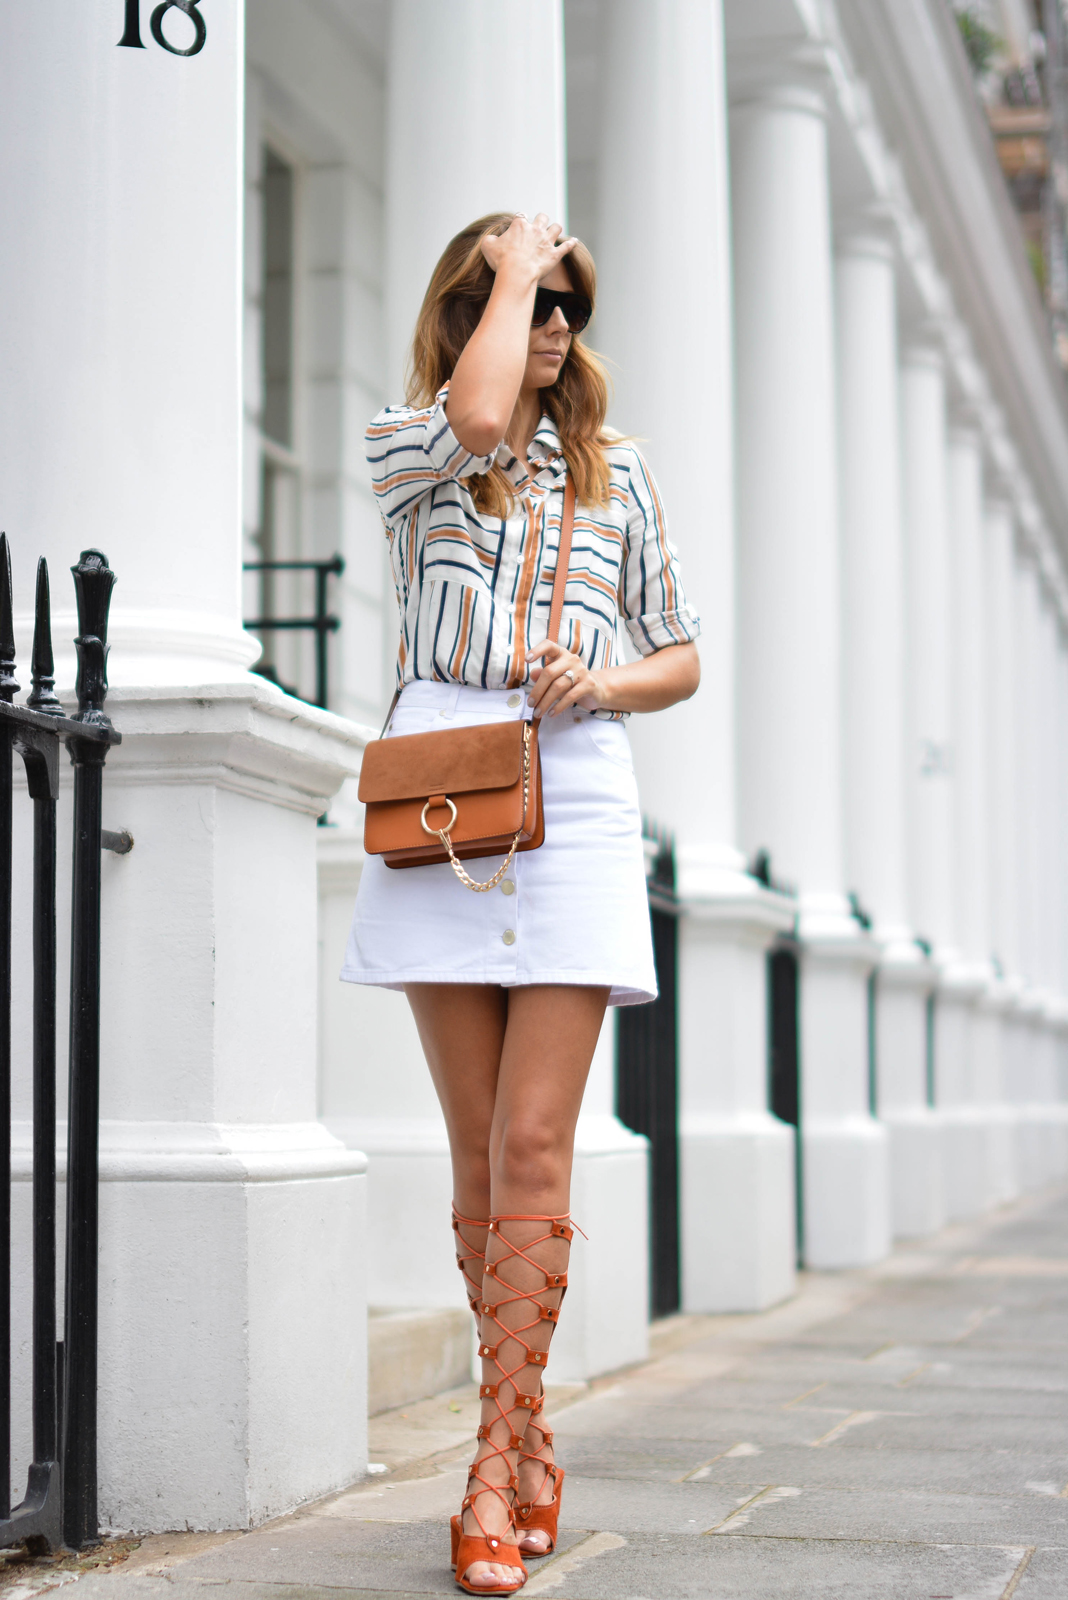 EJSTYLE wears Chloe style Tan lace up gladiator wedge sandals, White button up denim mini skirt, retro stripe shirt, Tan suede leather chloe style Faye bag, OOTD, london street style